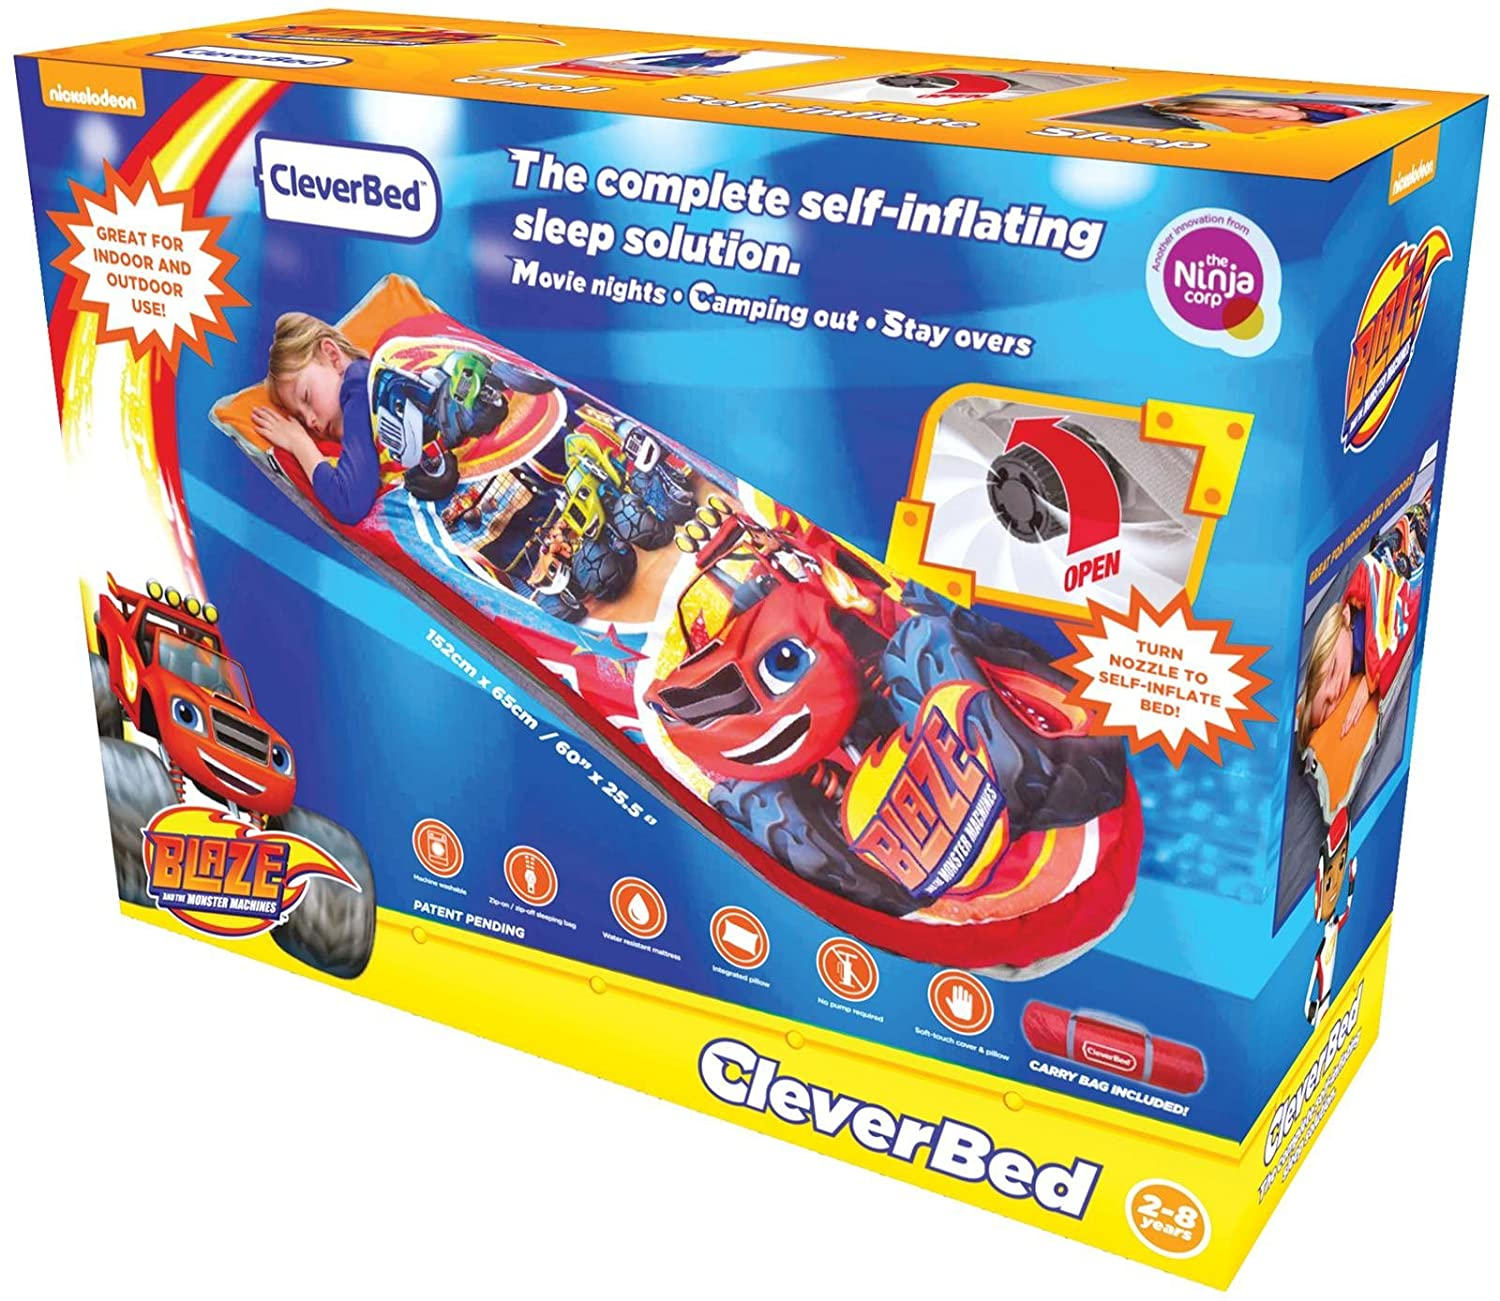 Little tikes lightning mcqueen toddler bed - Nickelodeon Clever Bed Blaze Amazon Com Little Tikes Lightning Mcqueen Roadster Toddler Bed